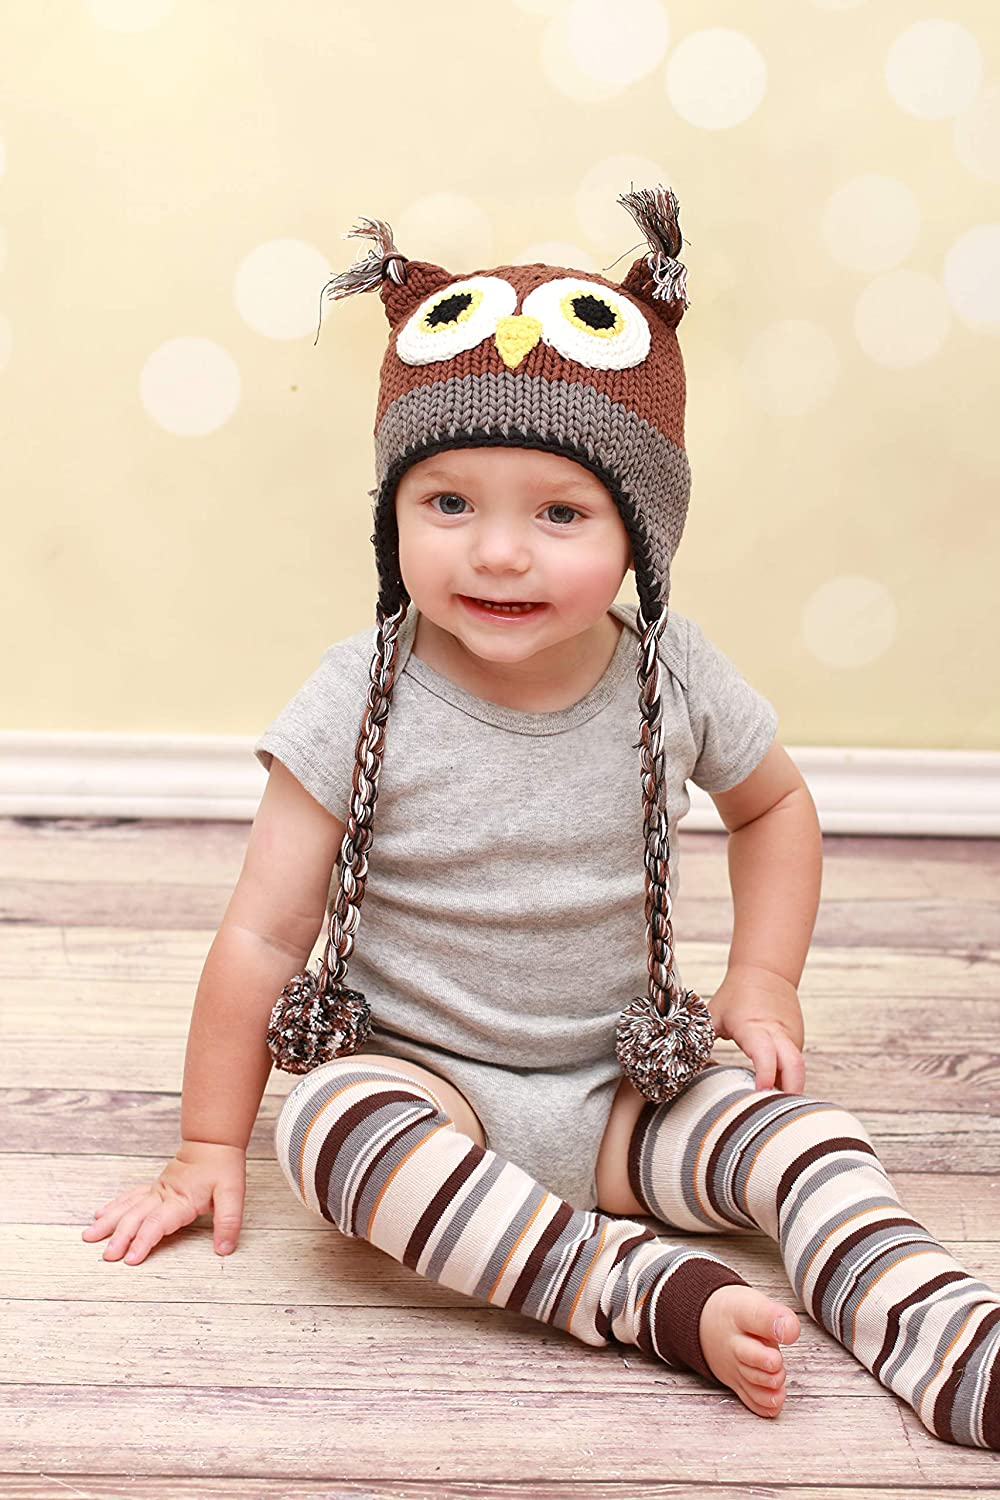 Huggalugs Sale Baby and Toddler Boys Leg Warmers in Prints and Stripes